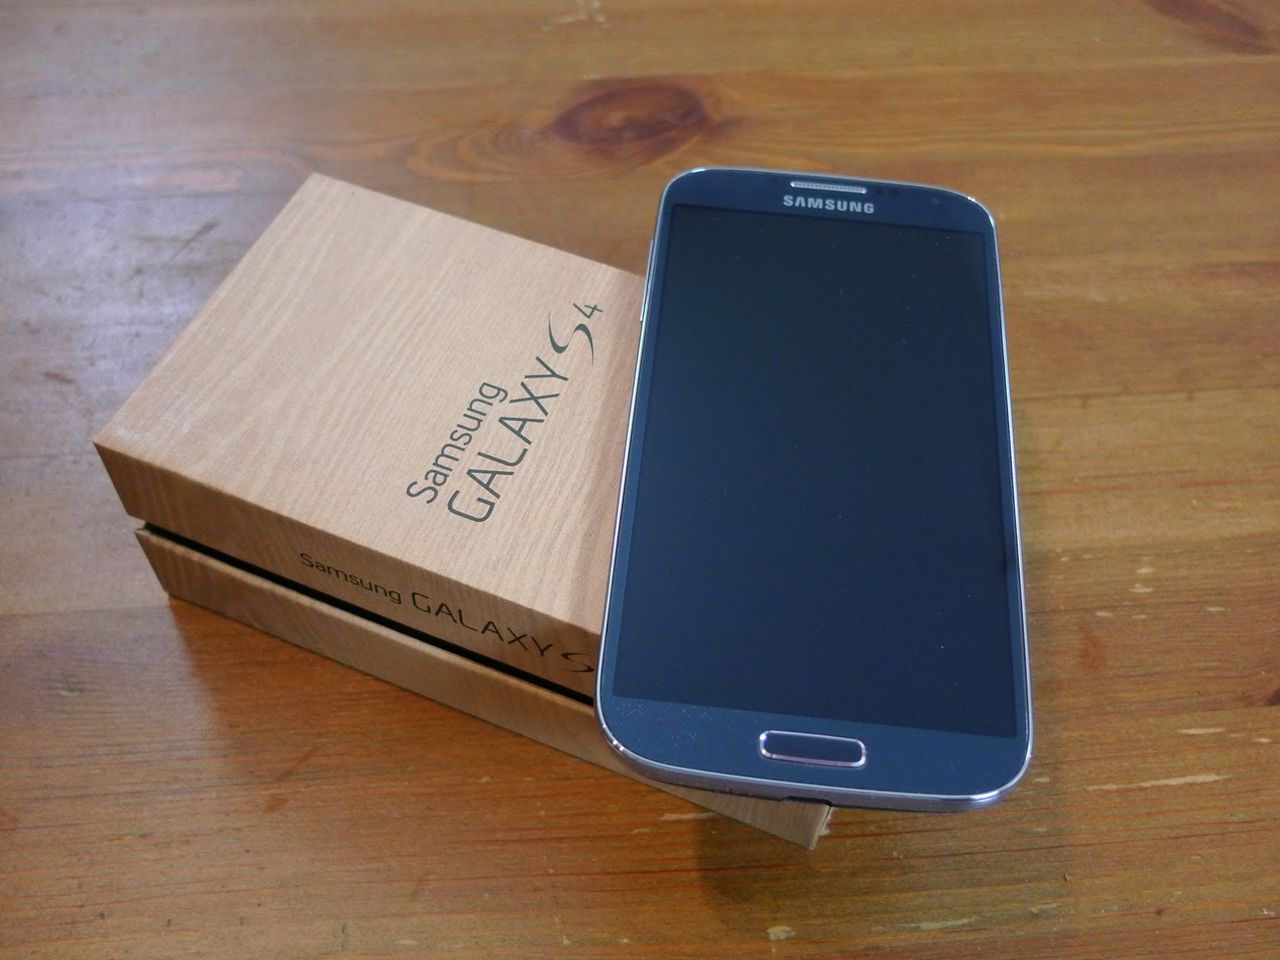 samsung galaxy s4 phone black. harga samsung galaxy s4 mini black edition phone